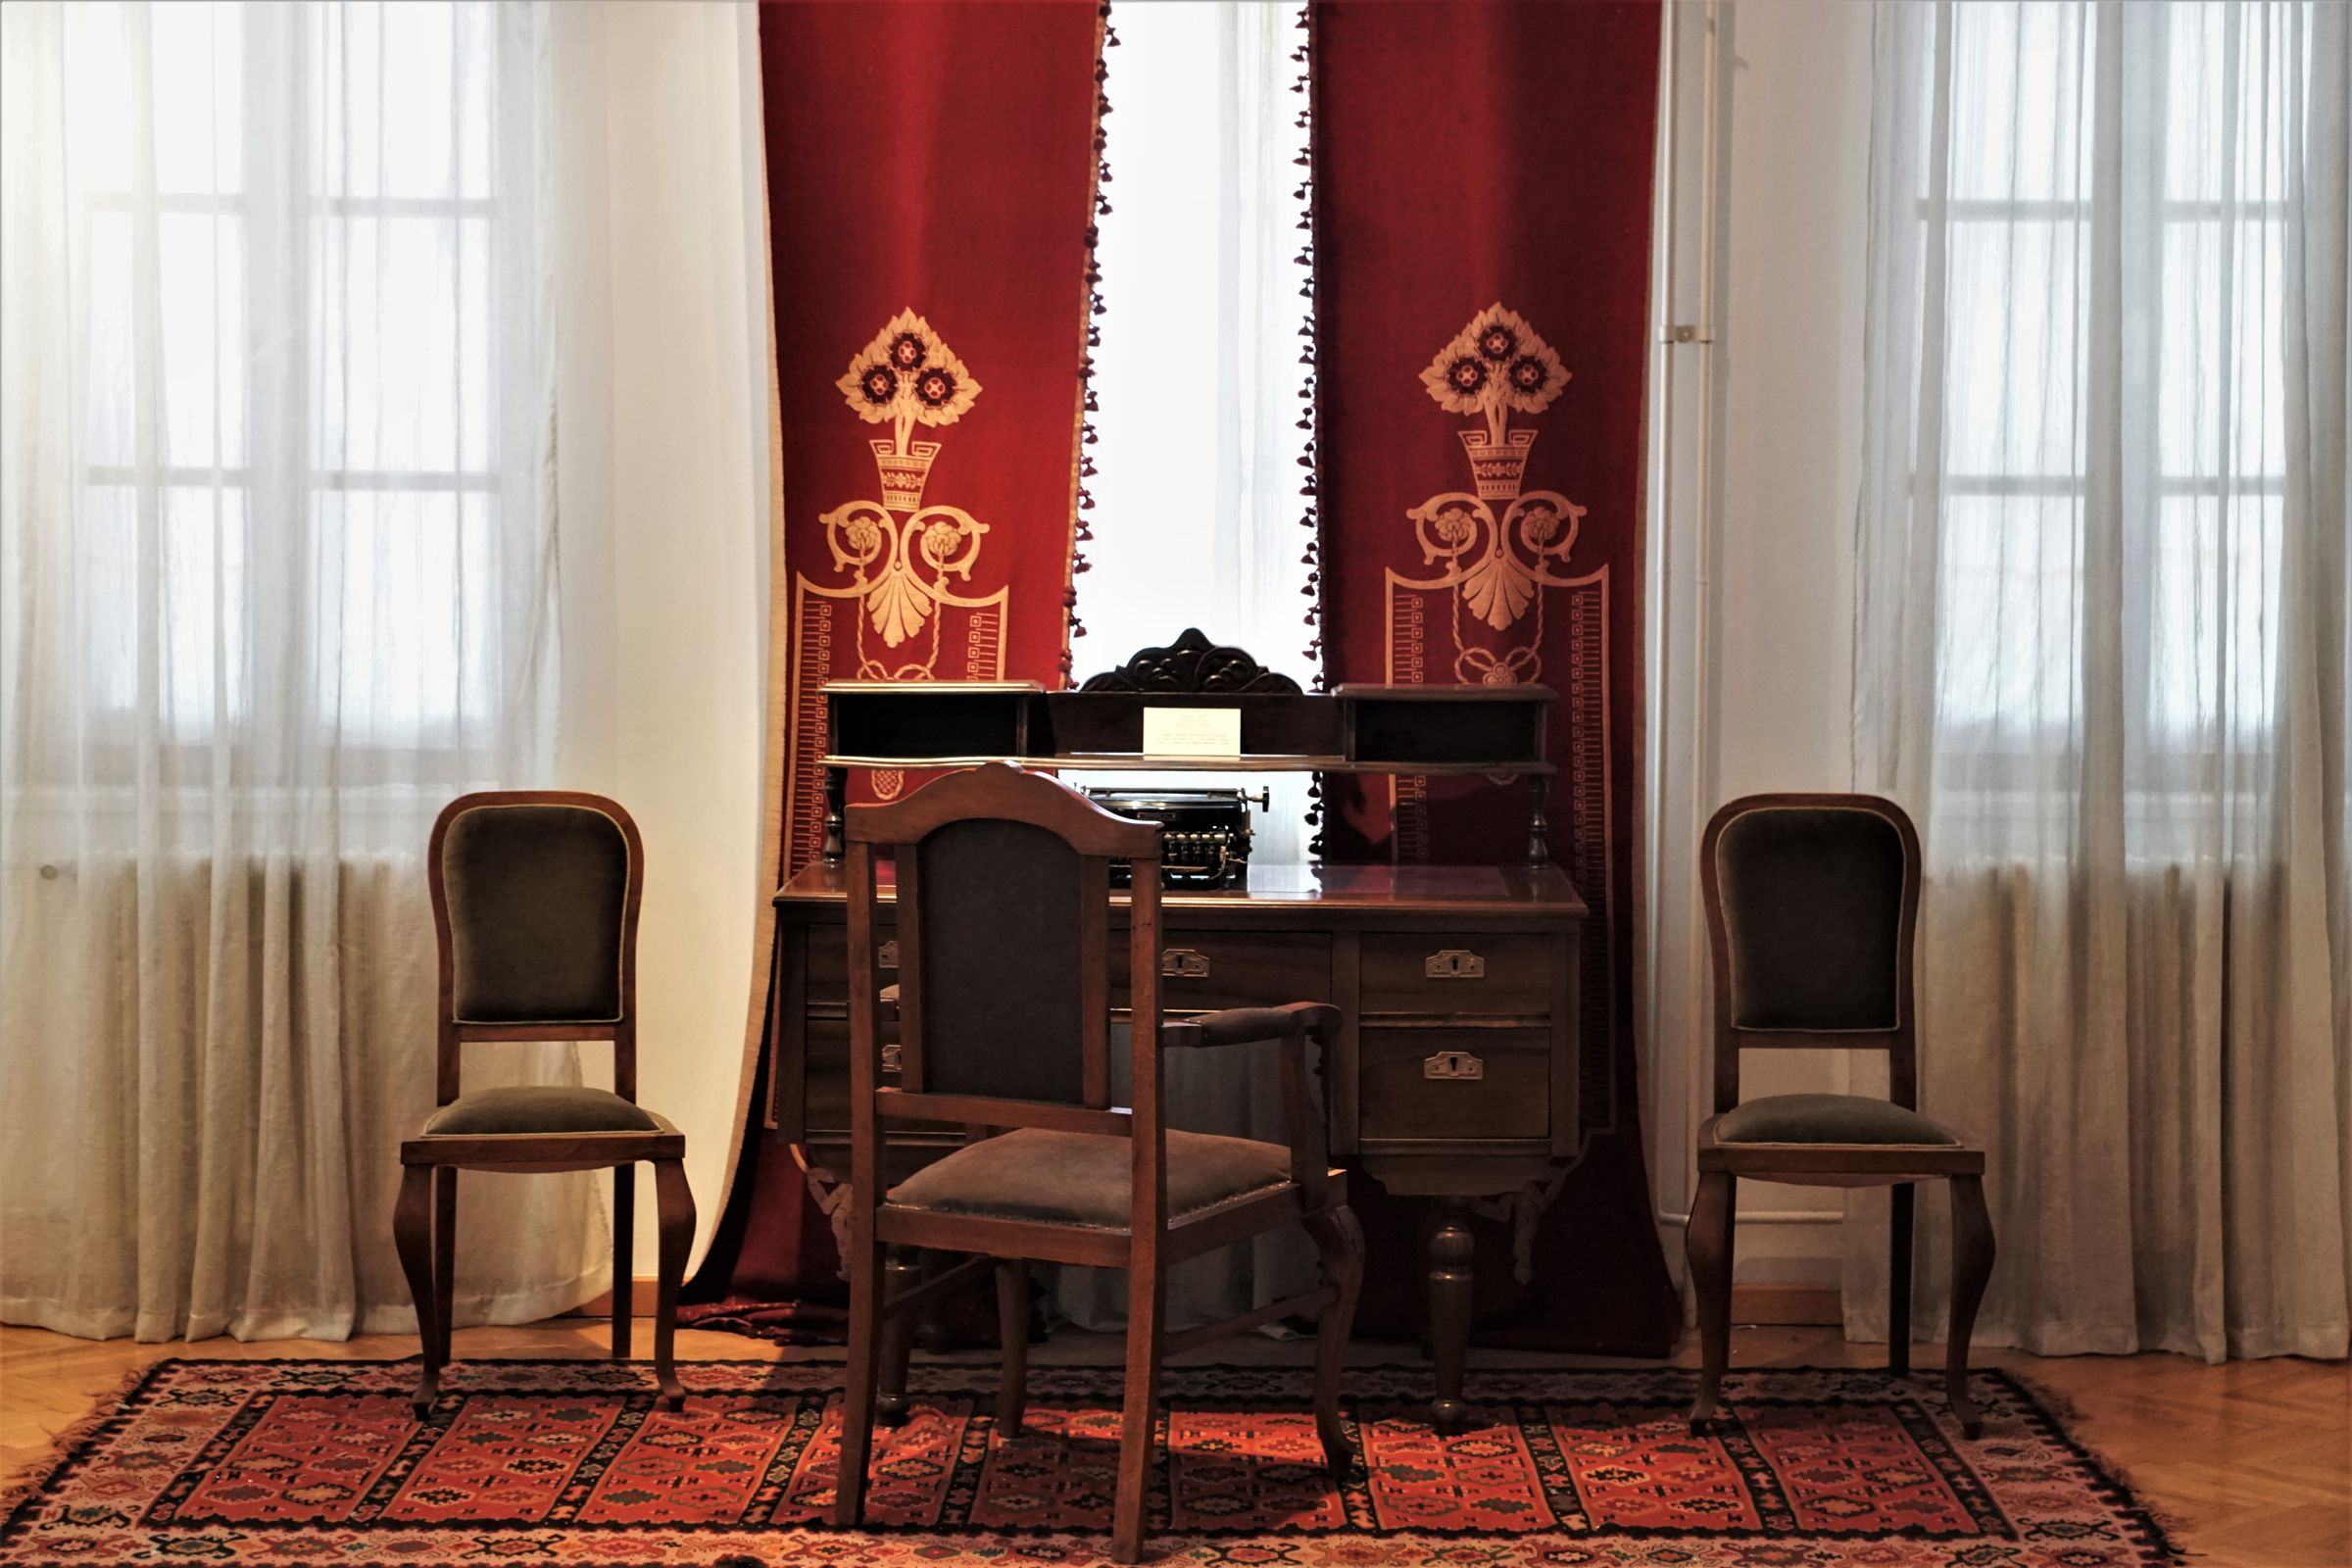 Reconstructed ambience of the study from the end of the 19th and the beginning of the 20th century